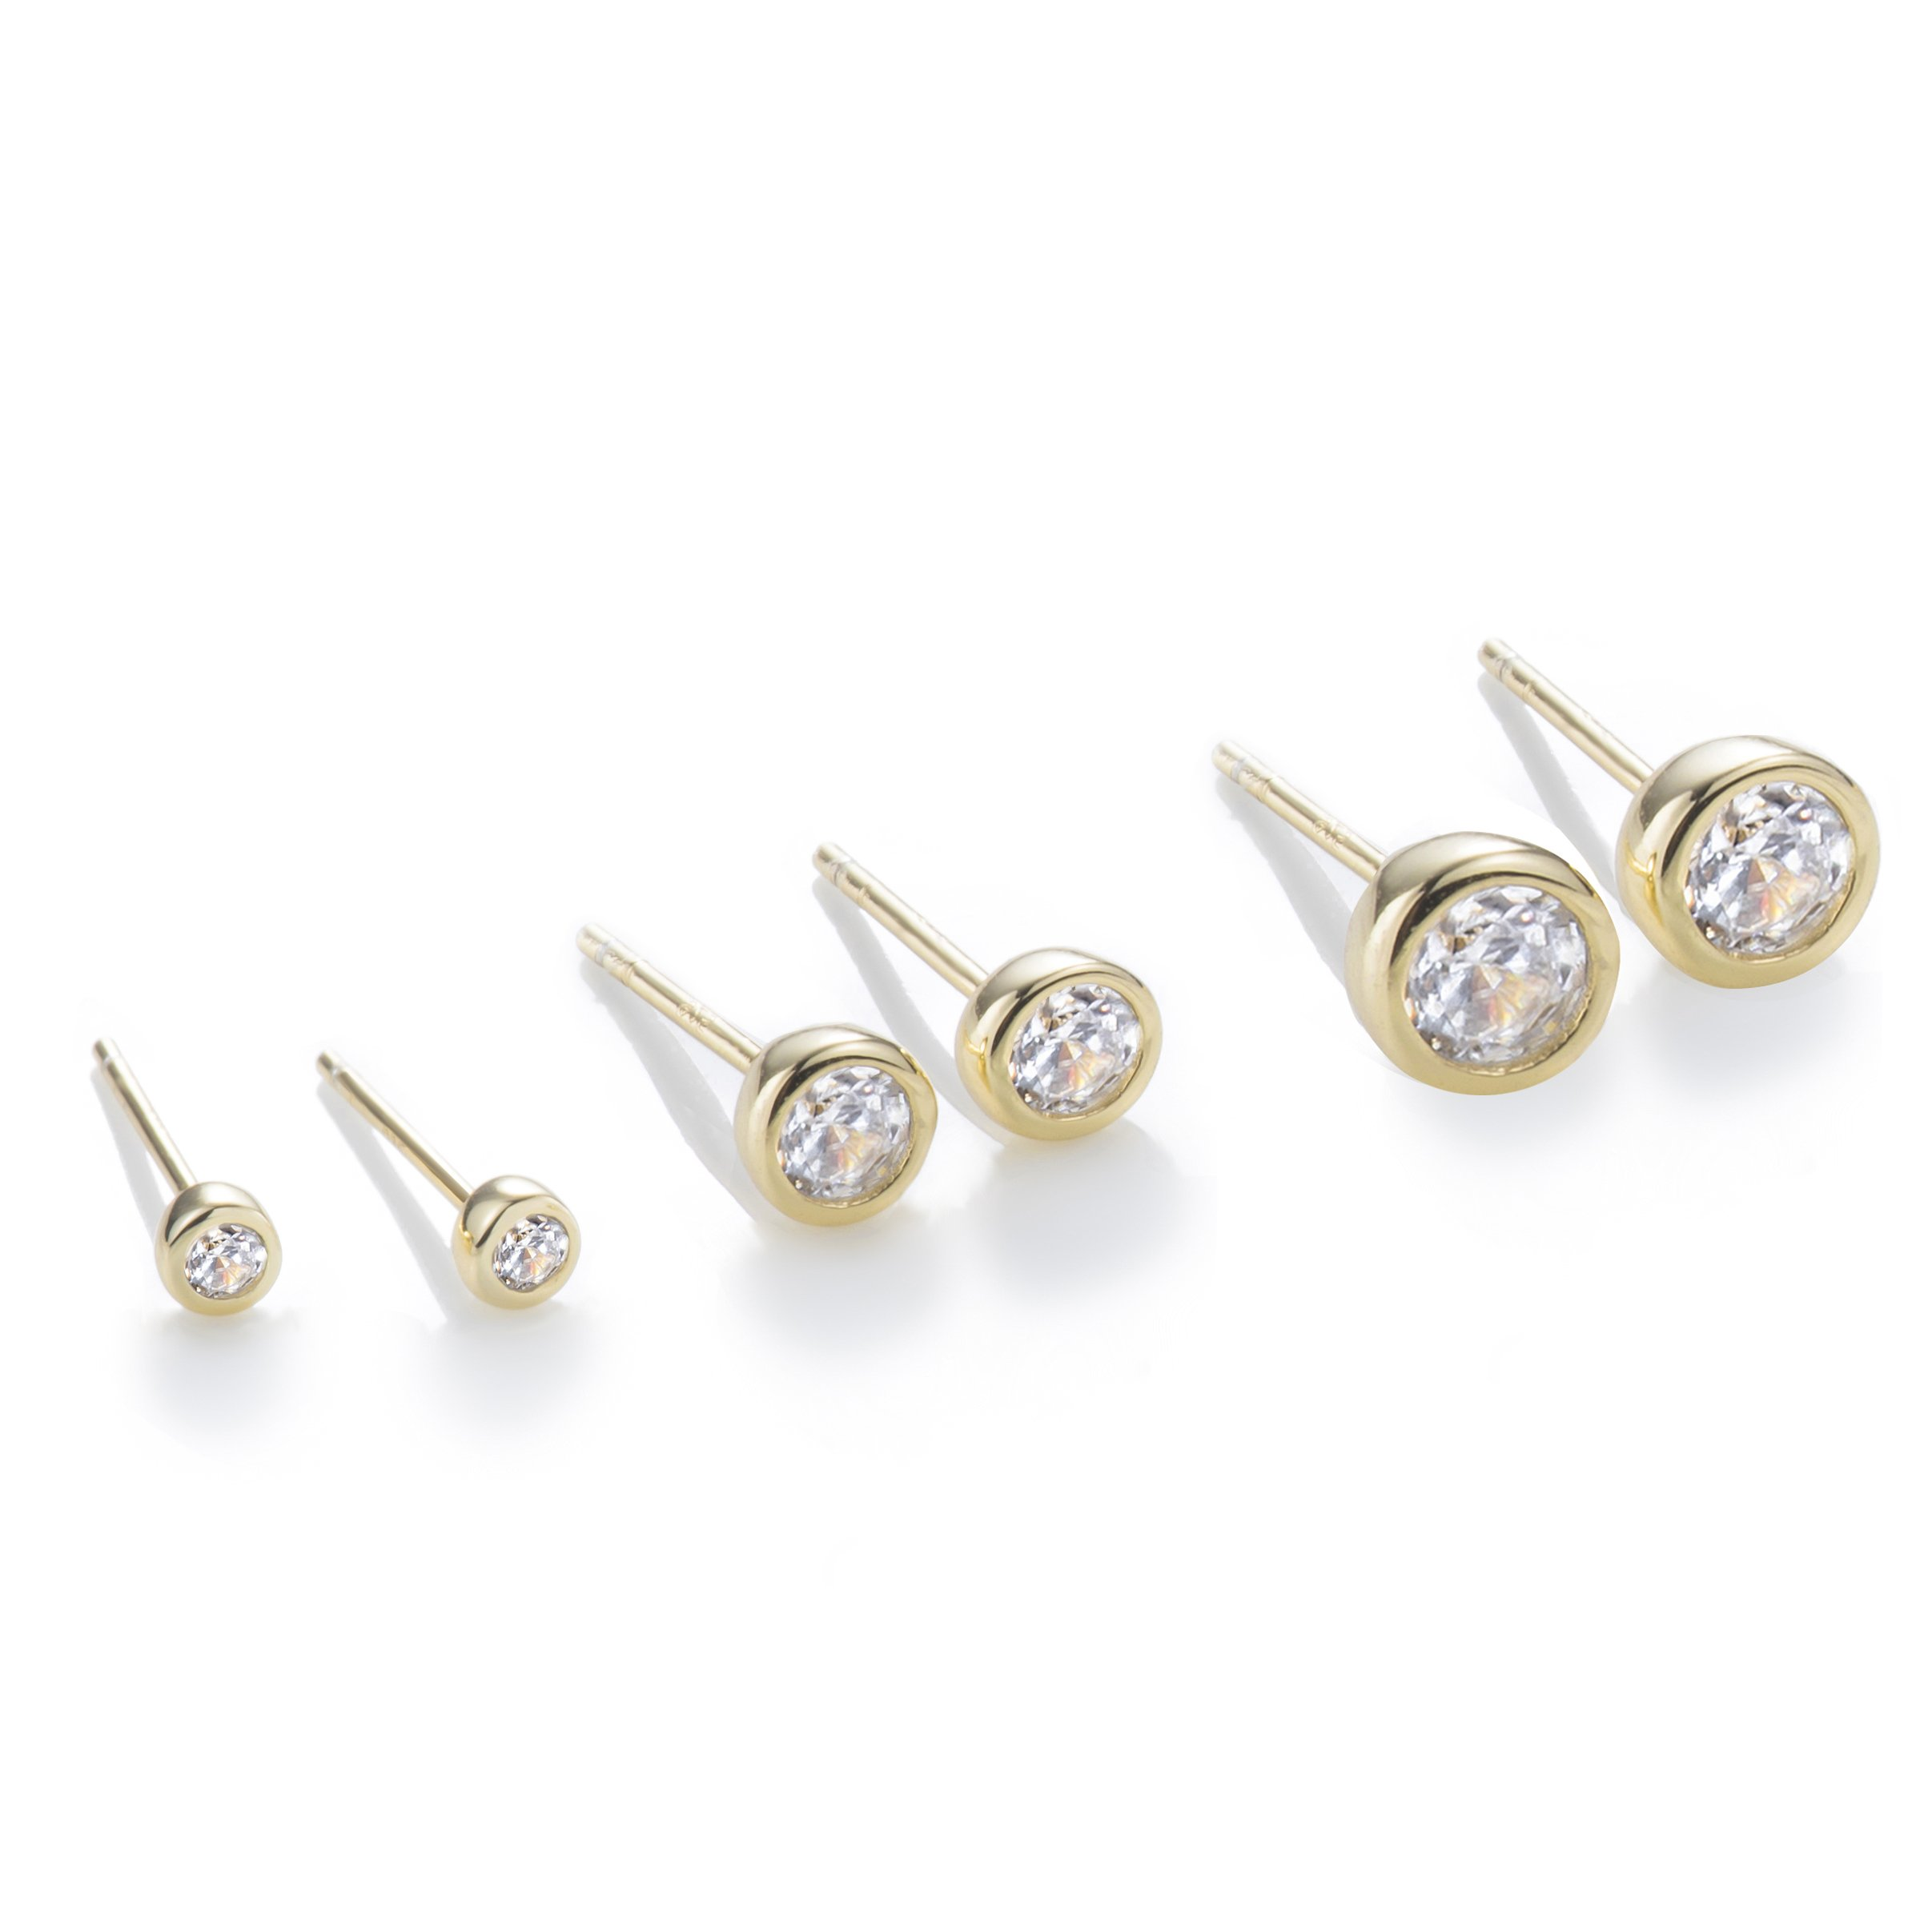 S.Leaf 3 Pairs Cubic Zirconia Stud Earrings Sterling Silver 14K Gold Plated Delicate Earrings